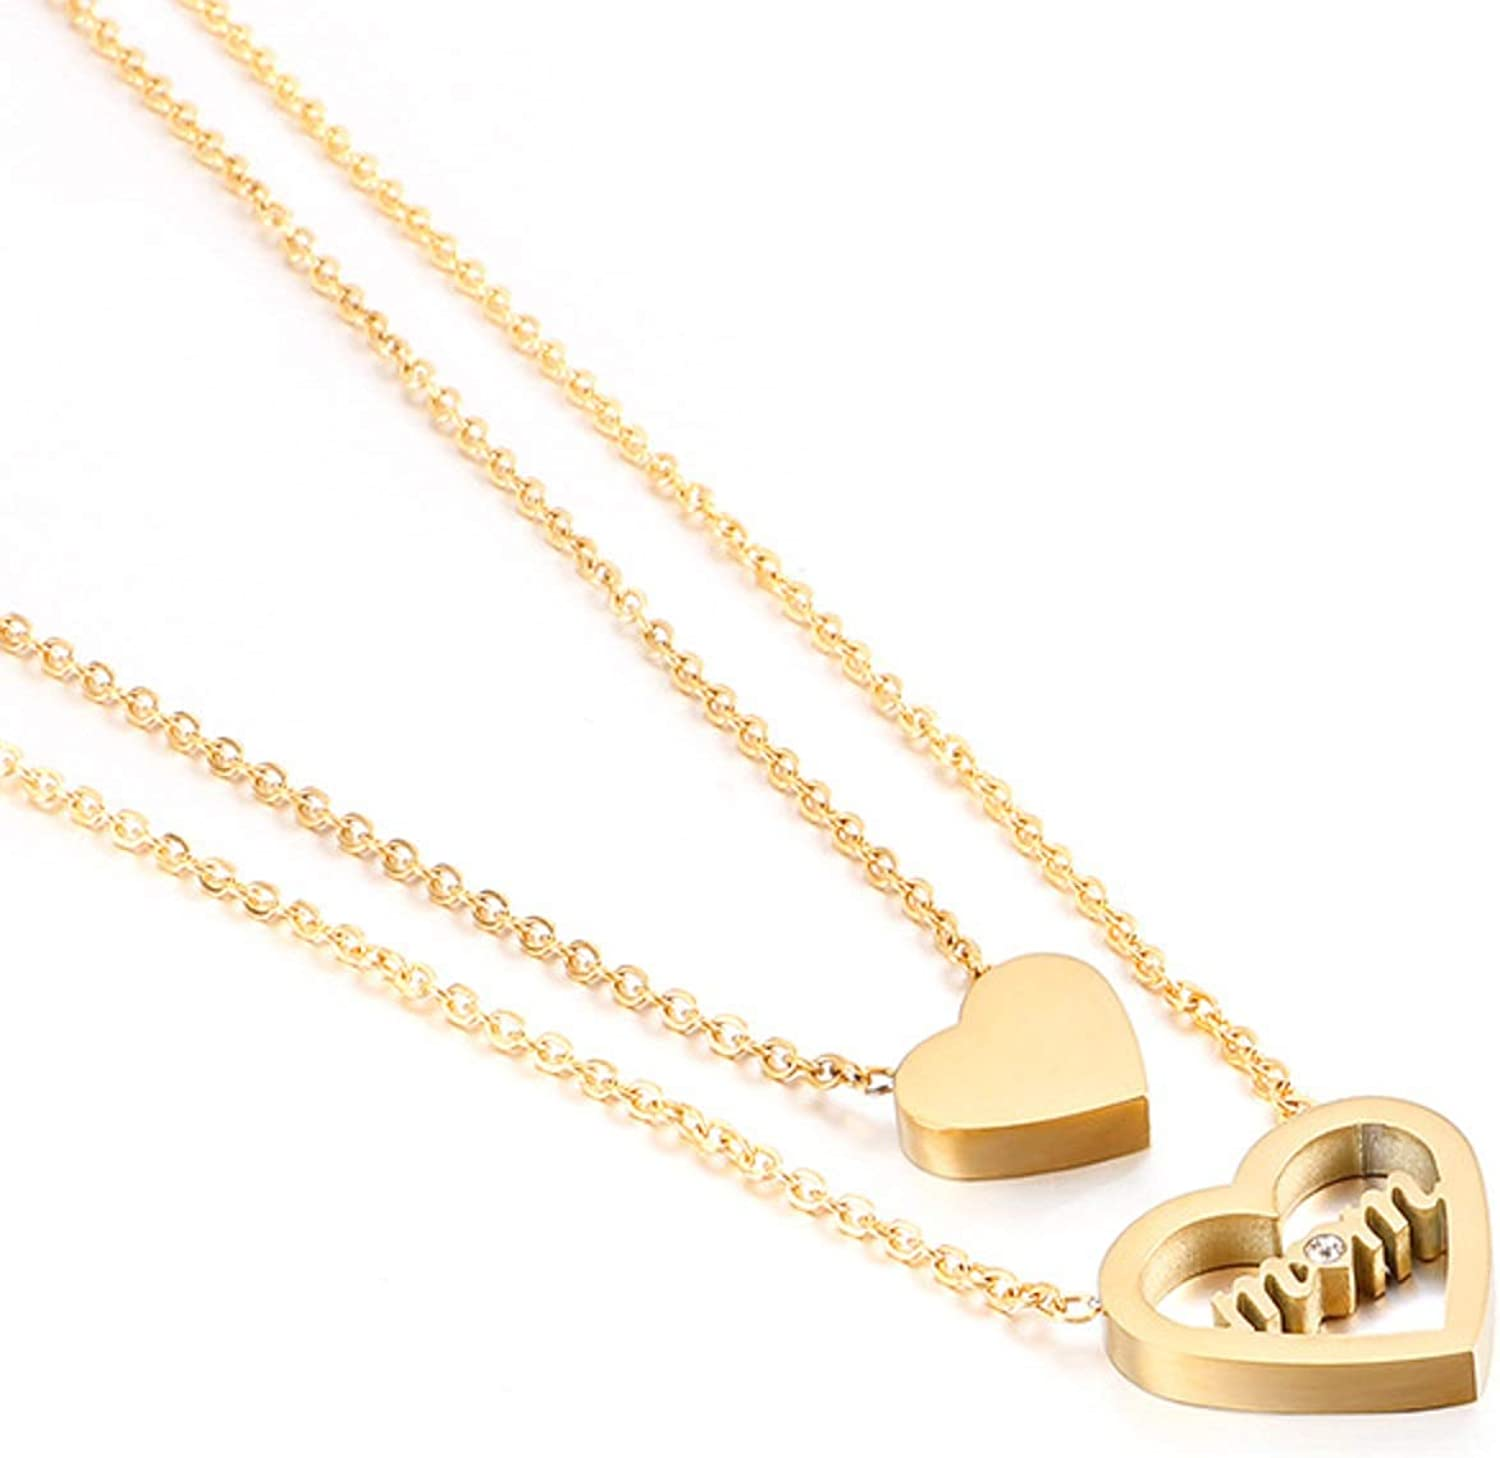 Nkoluky Layered Heart Mom Pendant Necklace Plated Stainless Steel Mother Jewelry Gifts